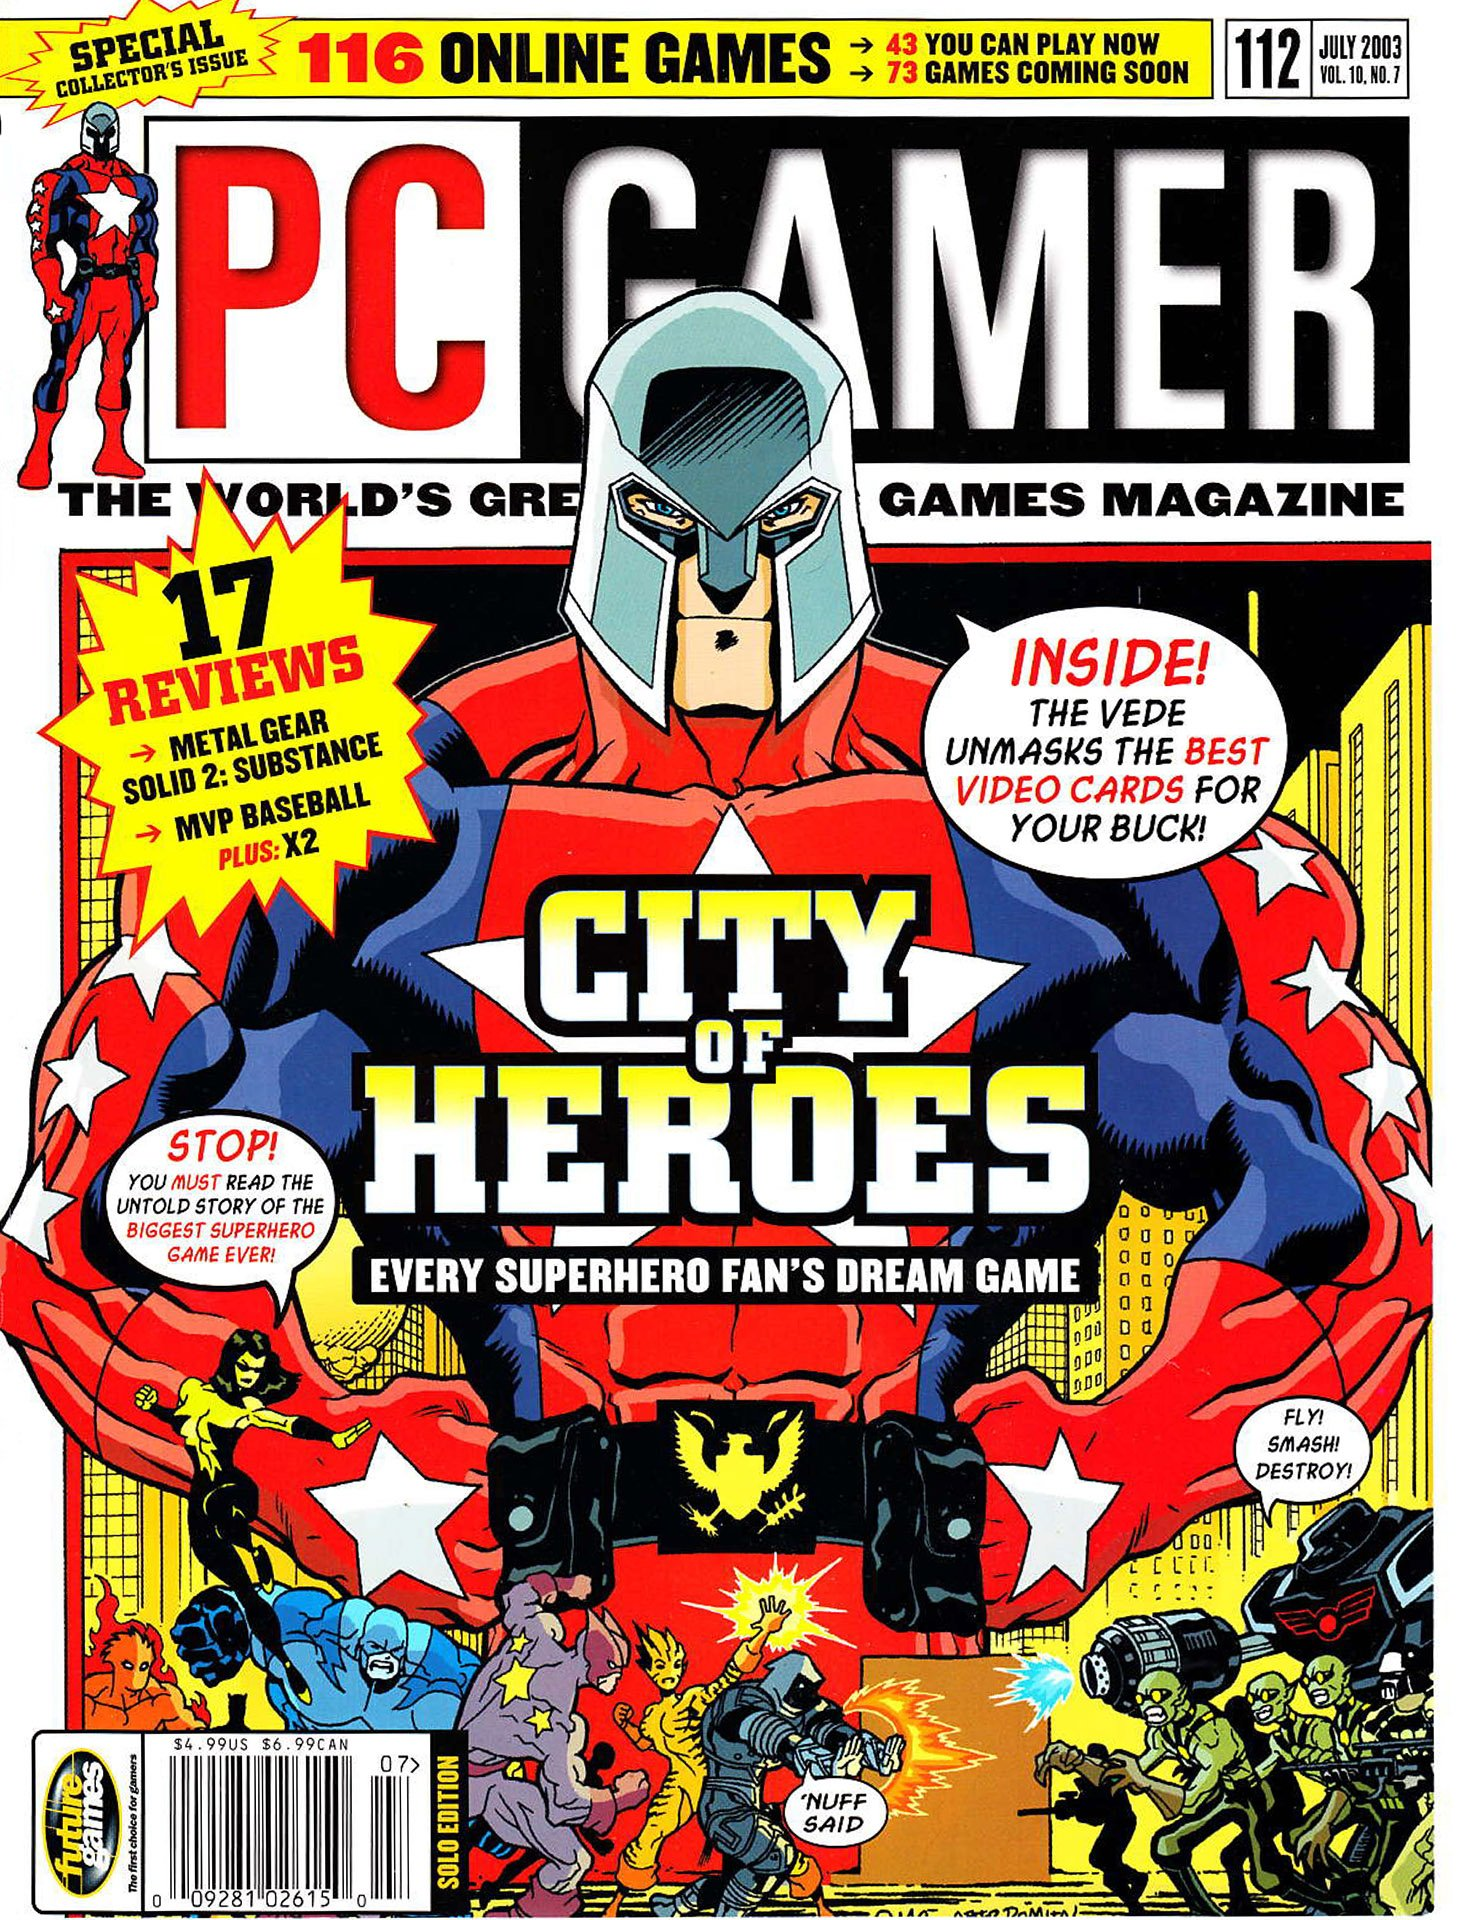 PC Gamer Issue 112 (July 2003)